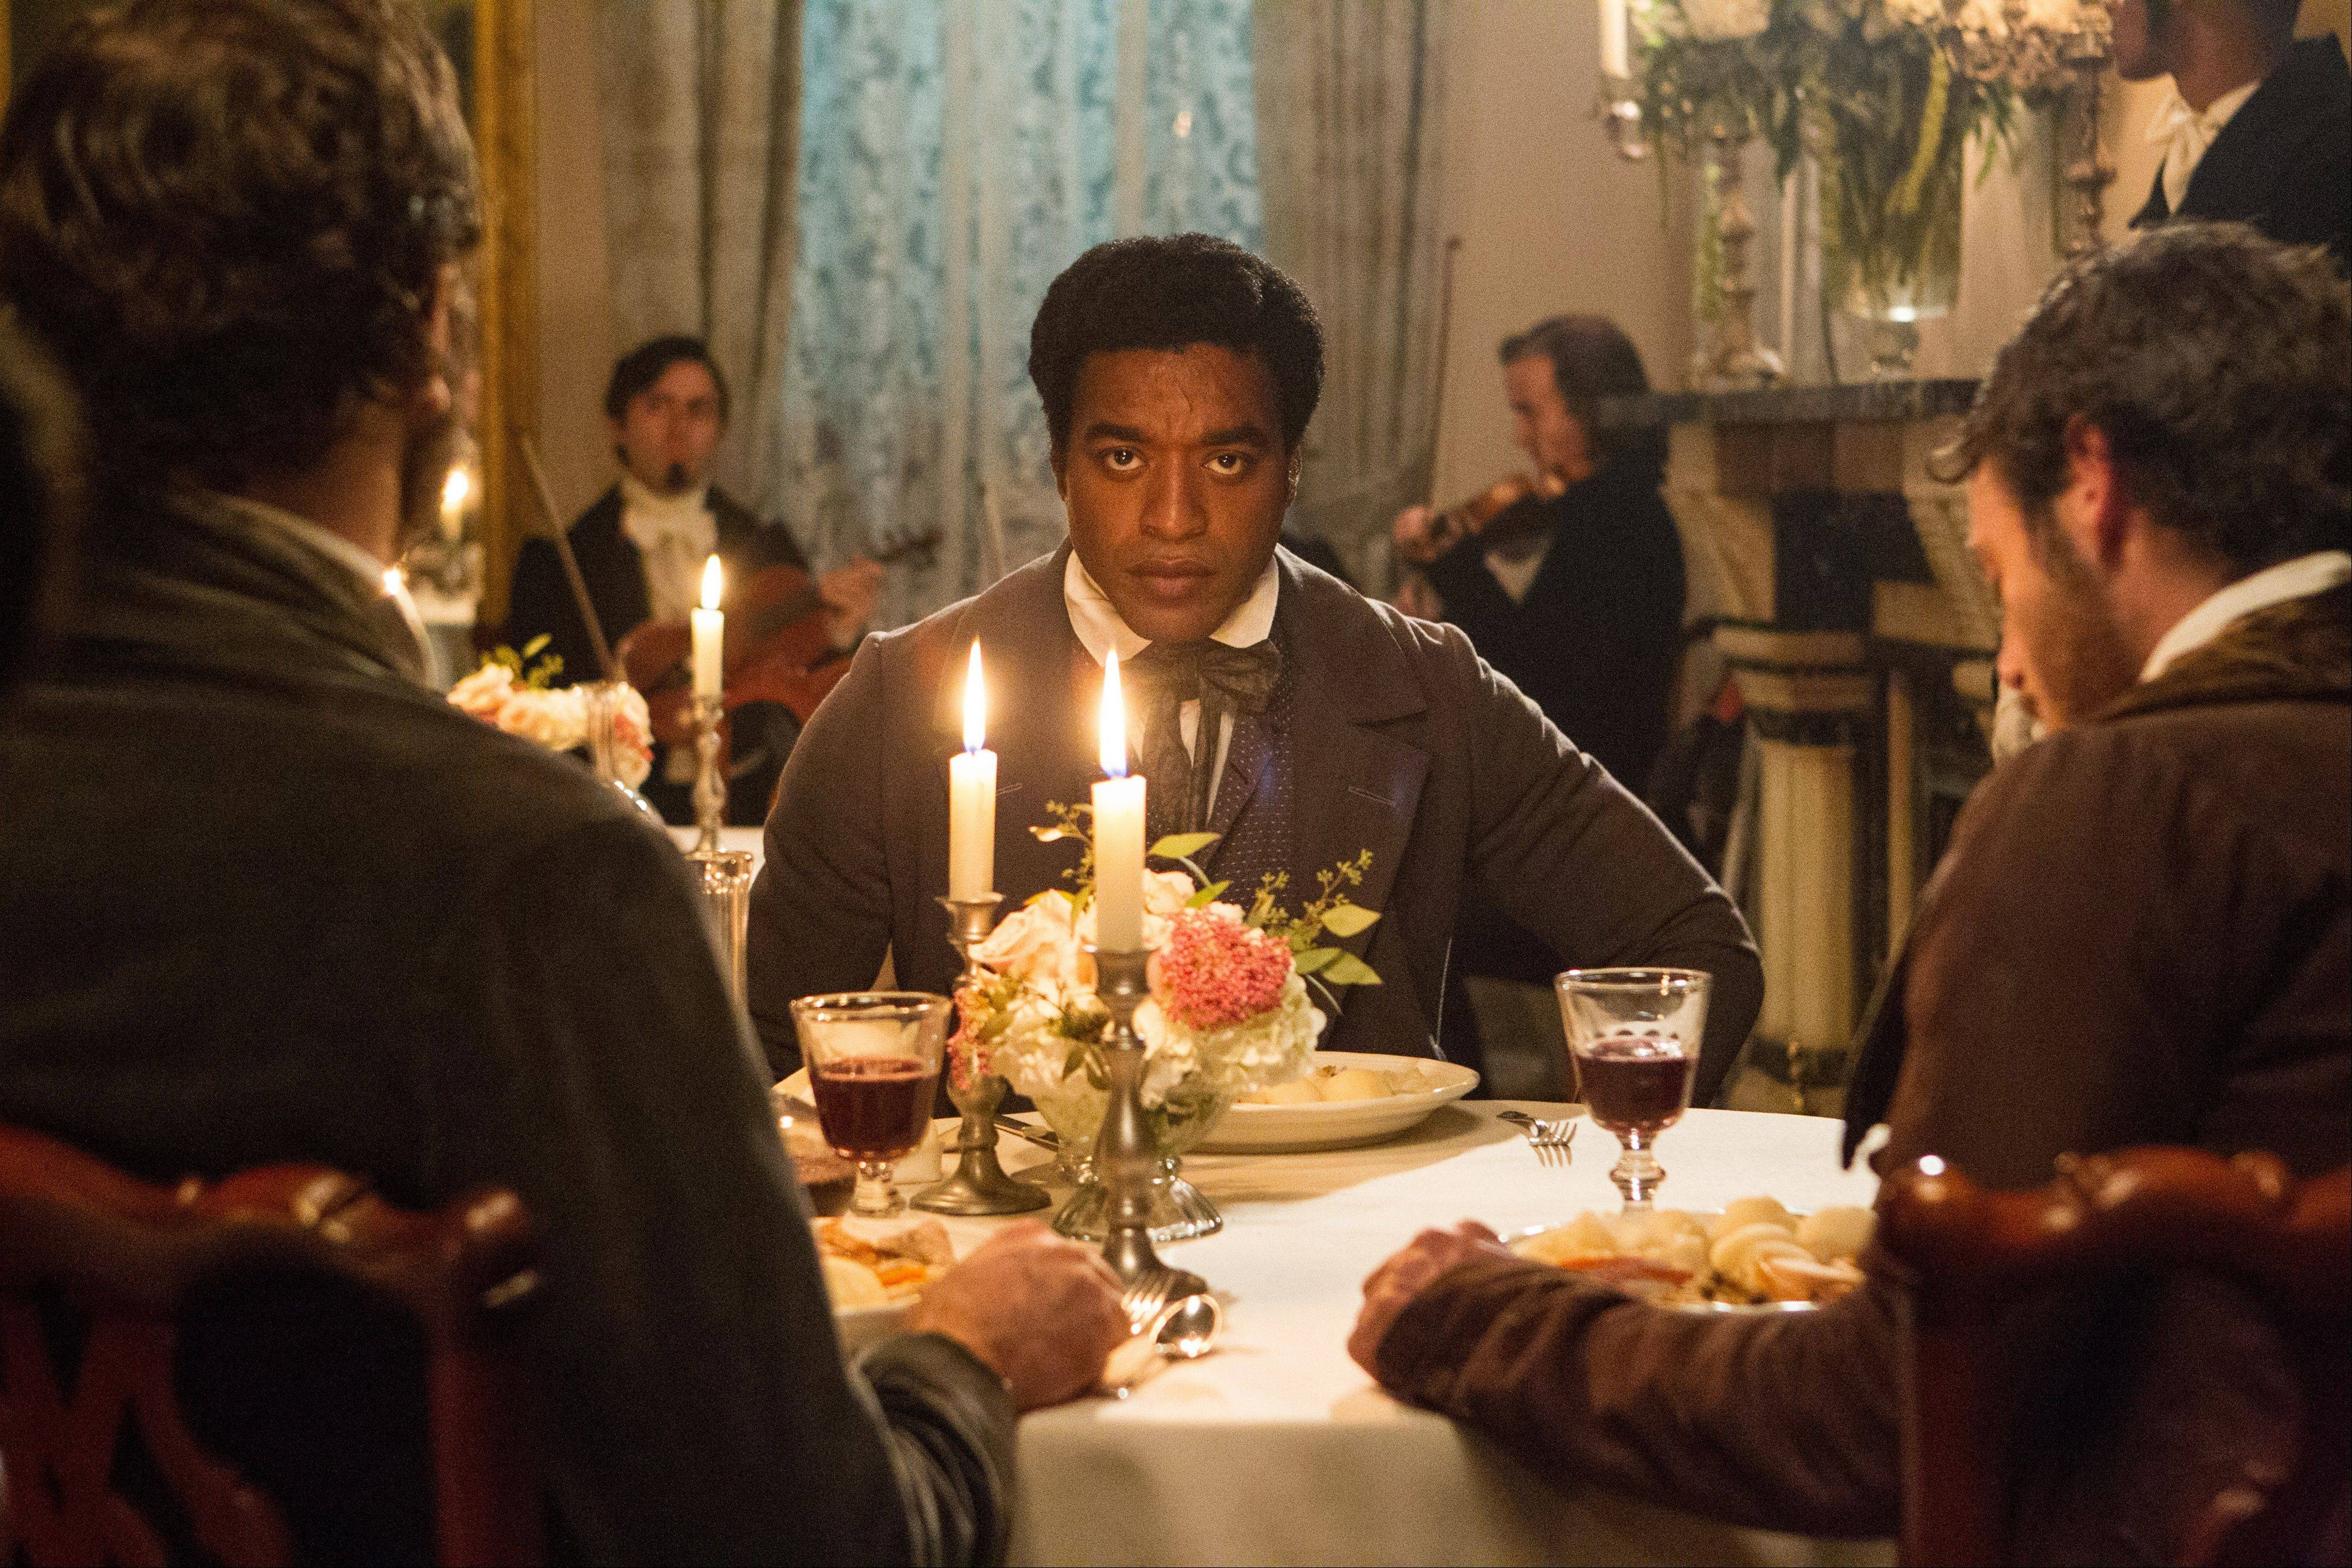 �12 Years A Slave� was nominated for a Spirit Award for best feature on Tuesday, Nov. 26, 2013. The Spirit Awards will take place Saturday, March 1, 2014.